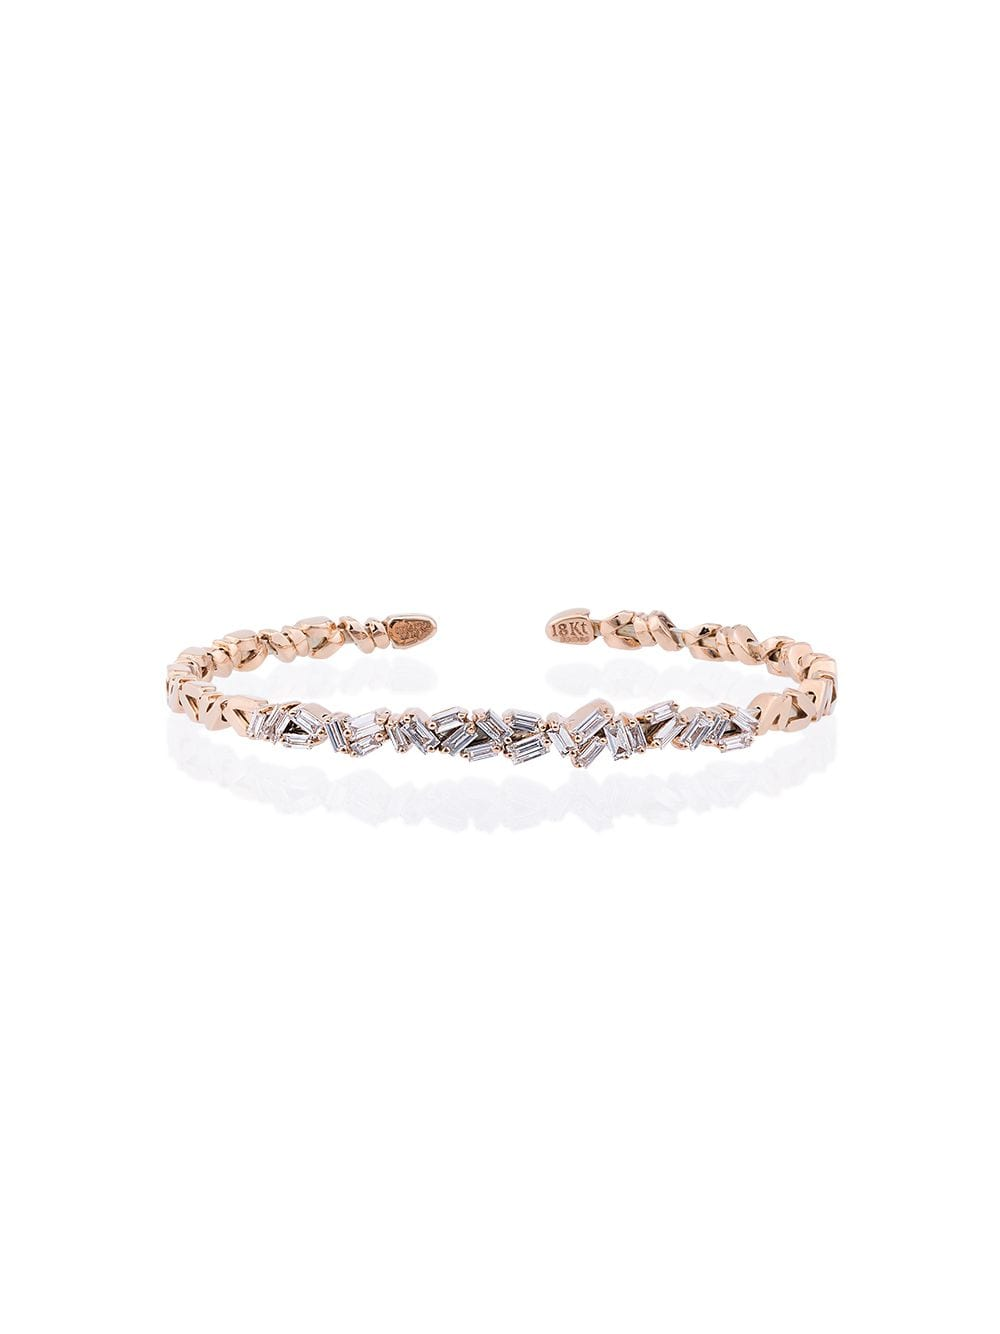 Suzanne Kalan 18K Rose Gold and diamond Fireworks ZigZag Baguette Bangle - Rosa